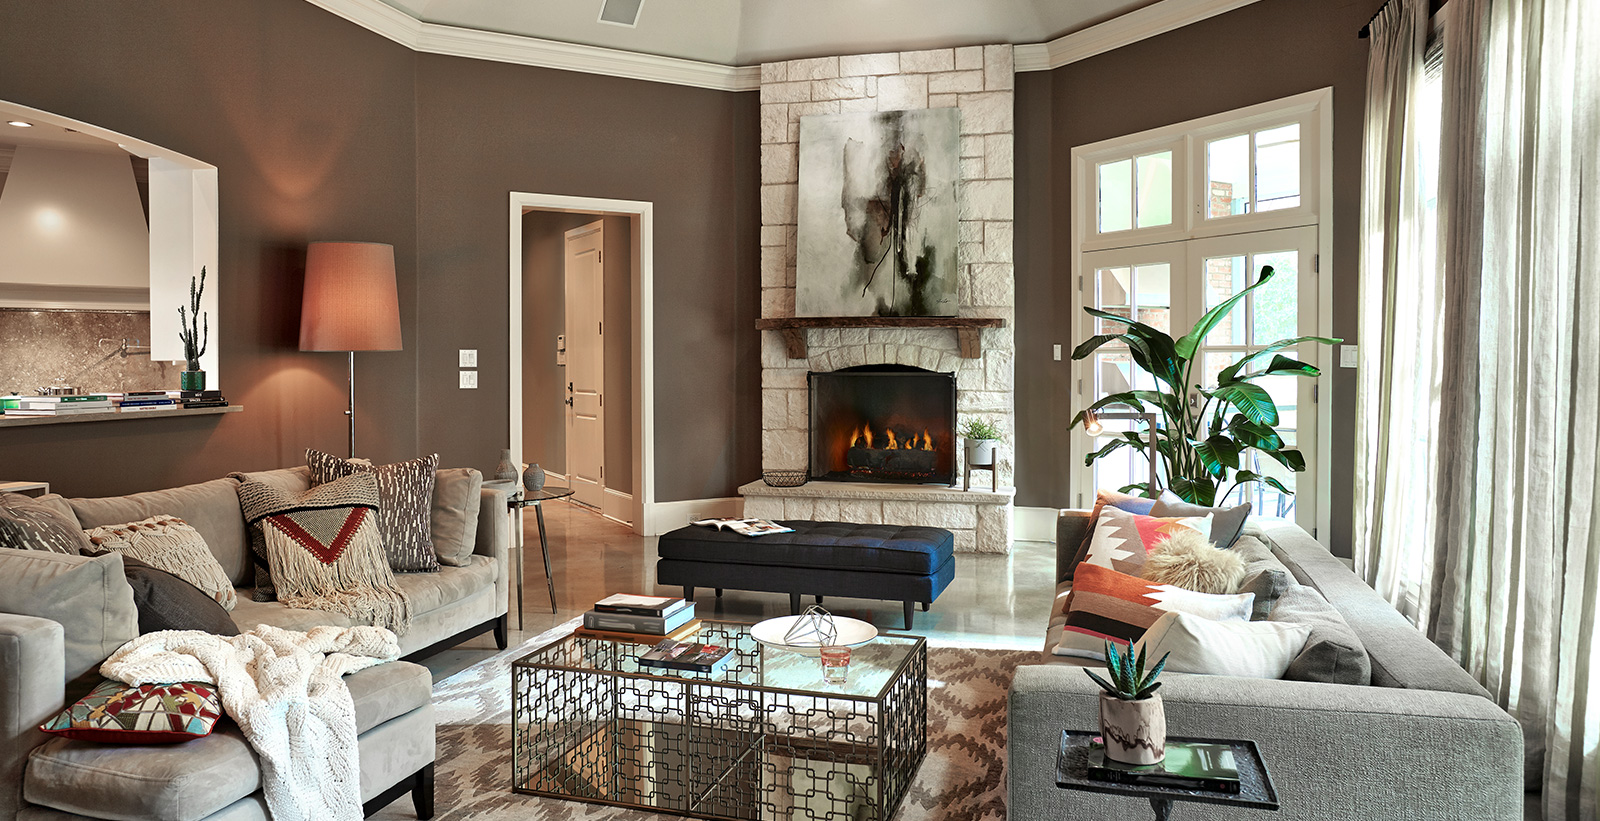 Brown Living Room Ideas And Inspirational Paint Colors Behr,Magnolia Farms Waco Tx Hours